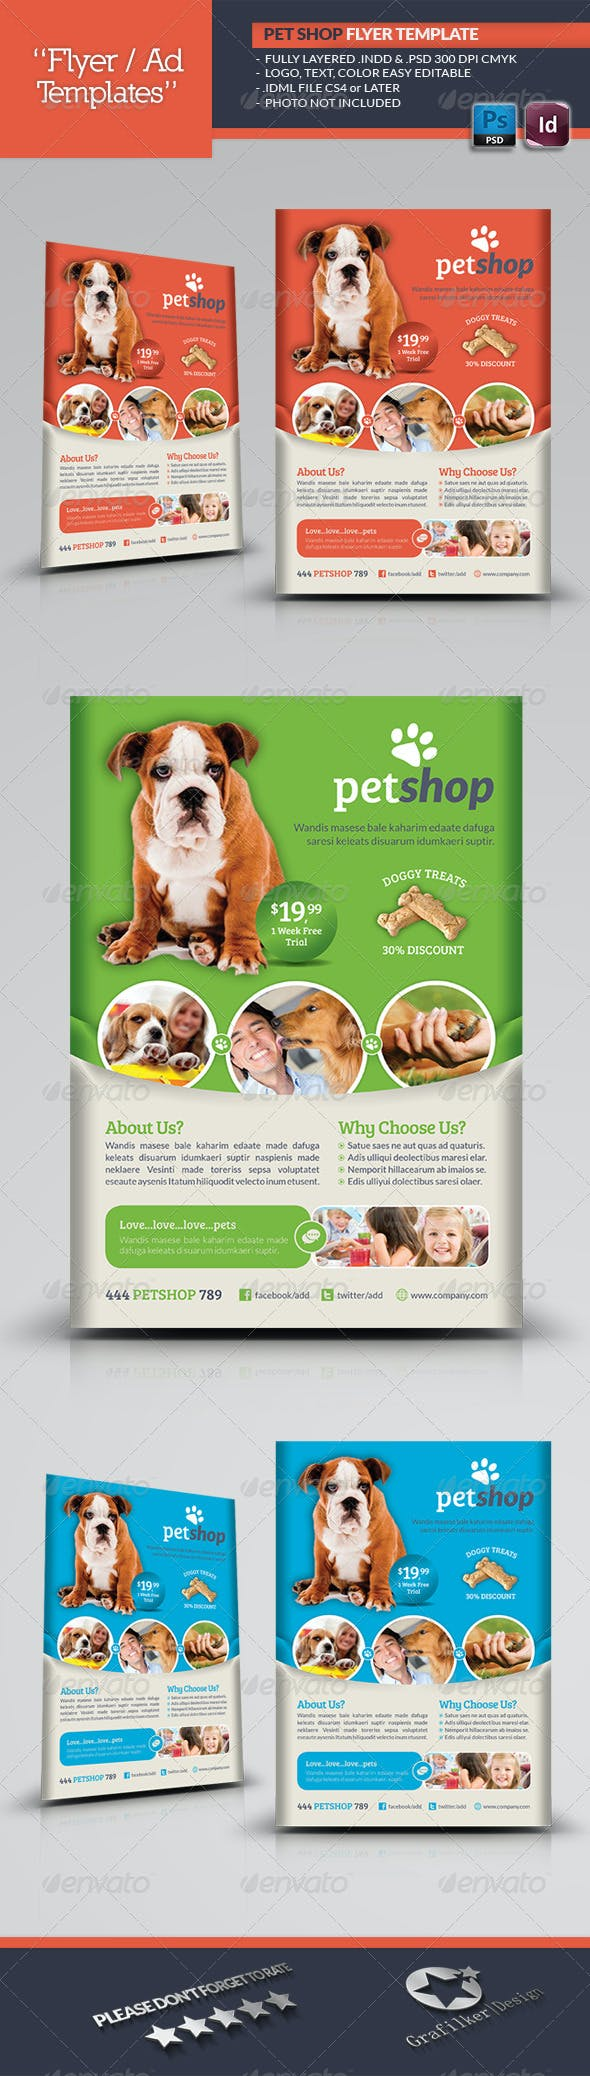 Pet Shop Flyer Template By Grafilker Graphicriver